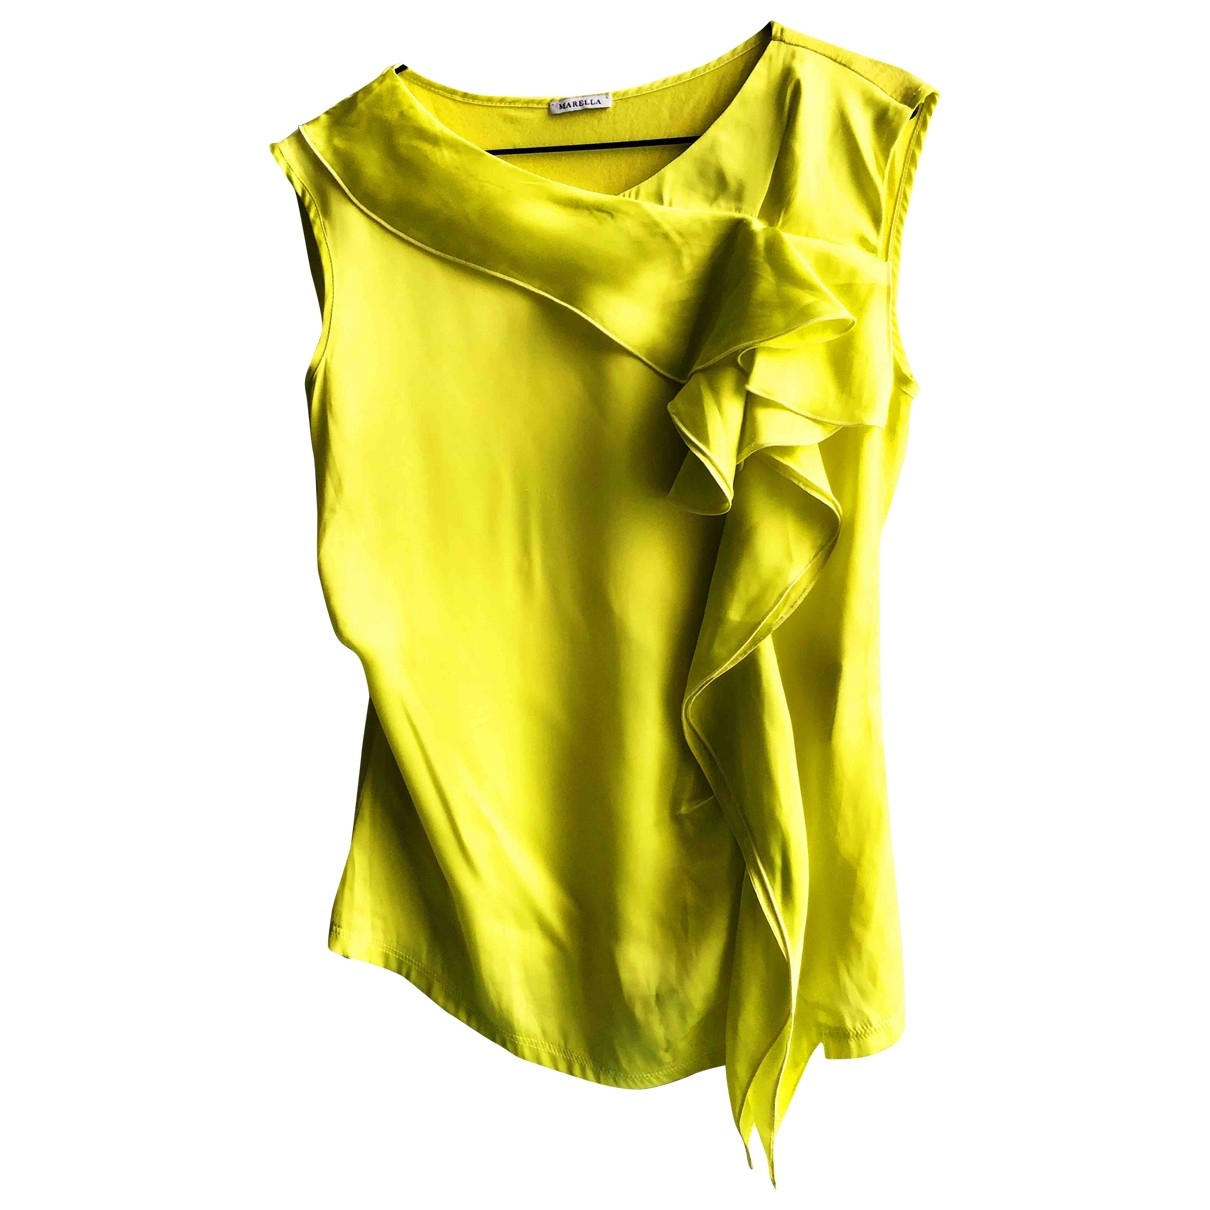 Marella \N Yellow  top for Women S International